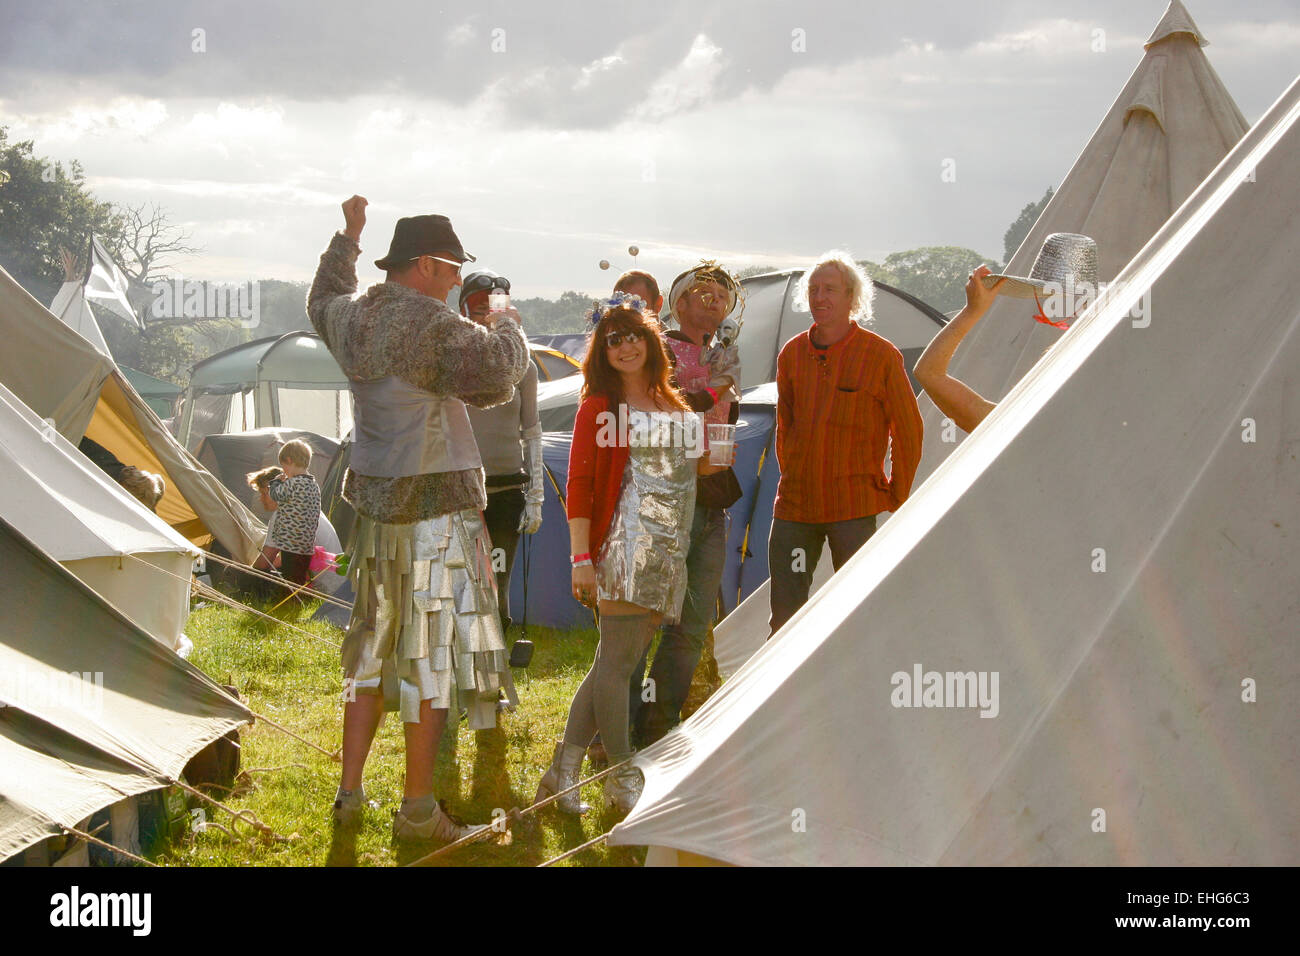 Lovely campsite at a festival in England. Stock Photo